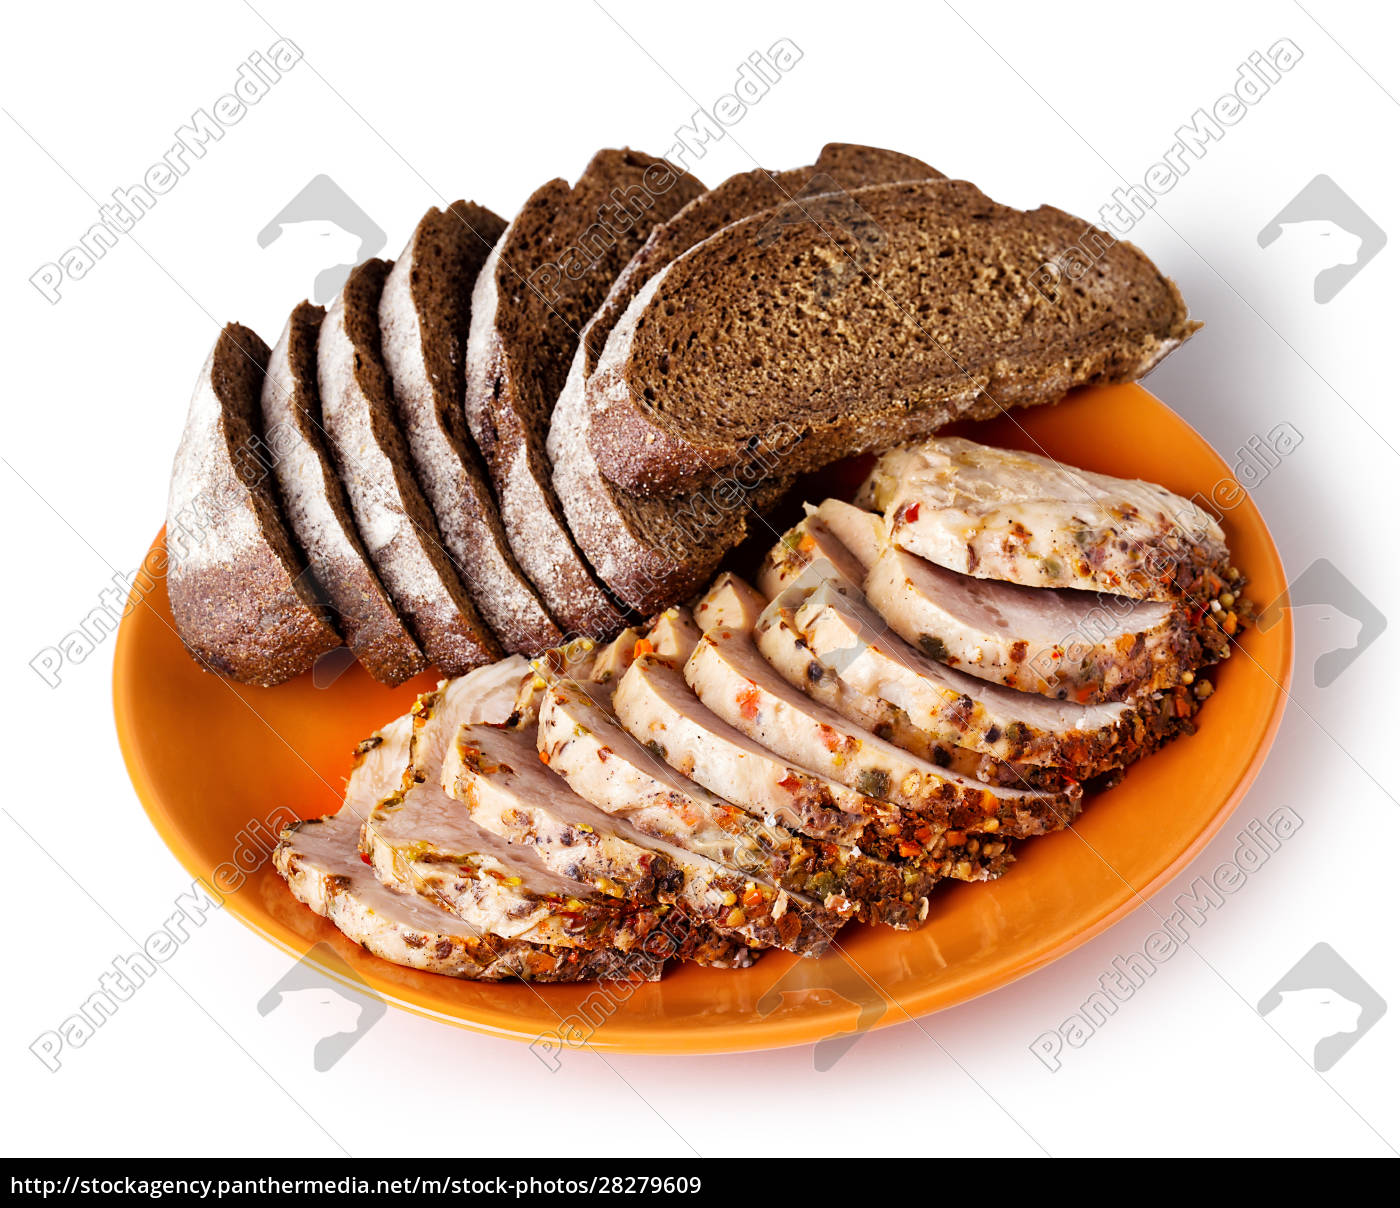 orange, dish, with, sliced, meat, and - 28279609